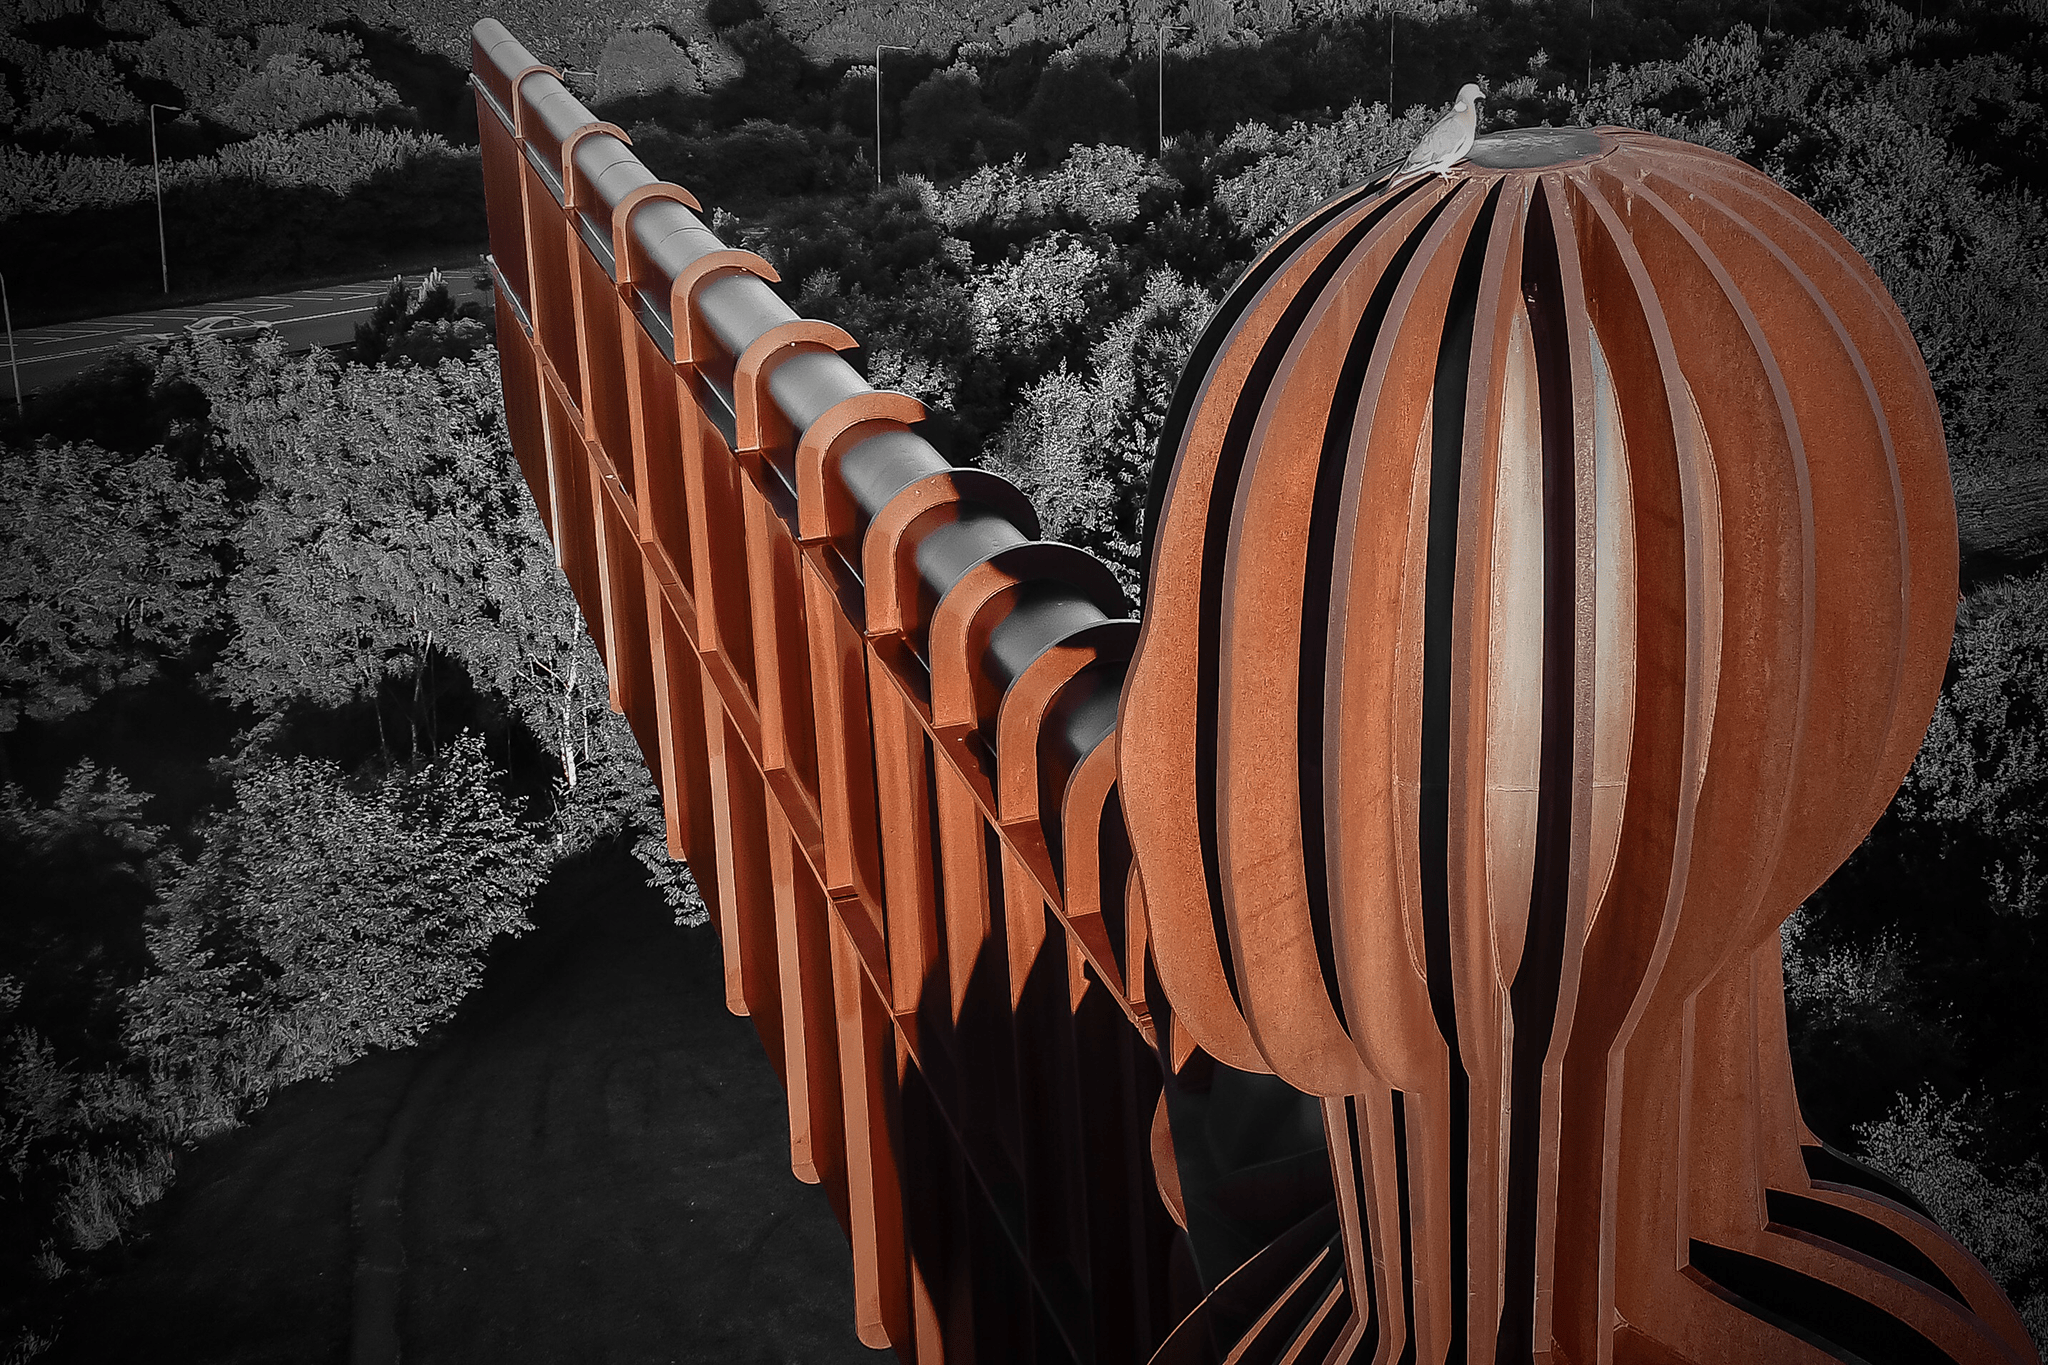 Drone image of the angel of the north. North East England